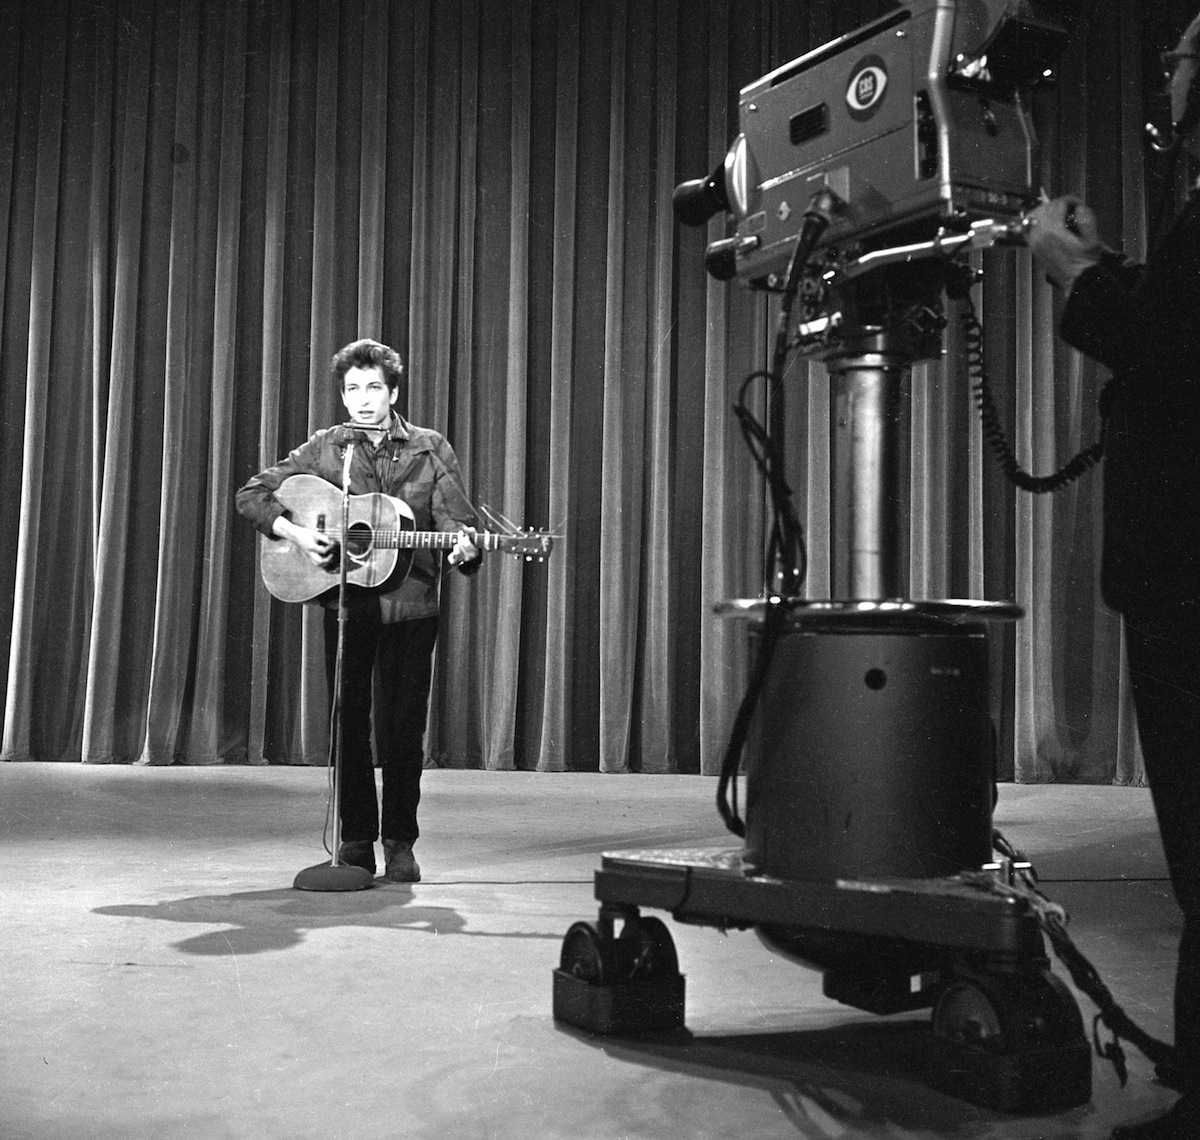 Bob Dylan during rehearsals for the Ed Sullivan Show on May 12, 1963